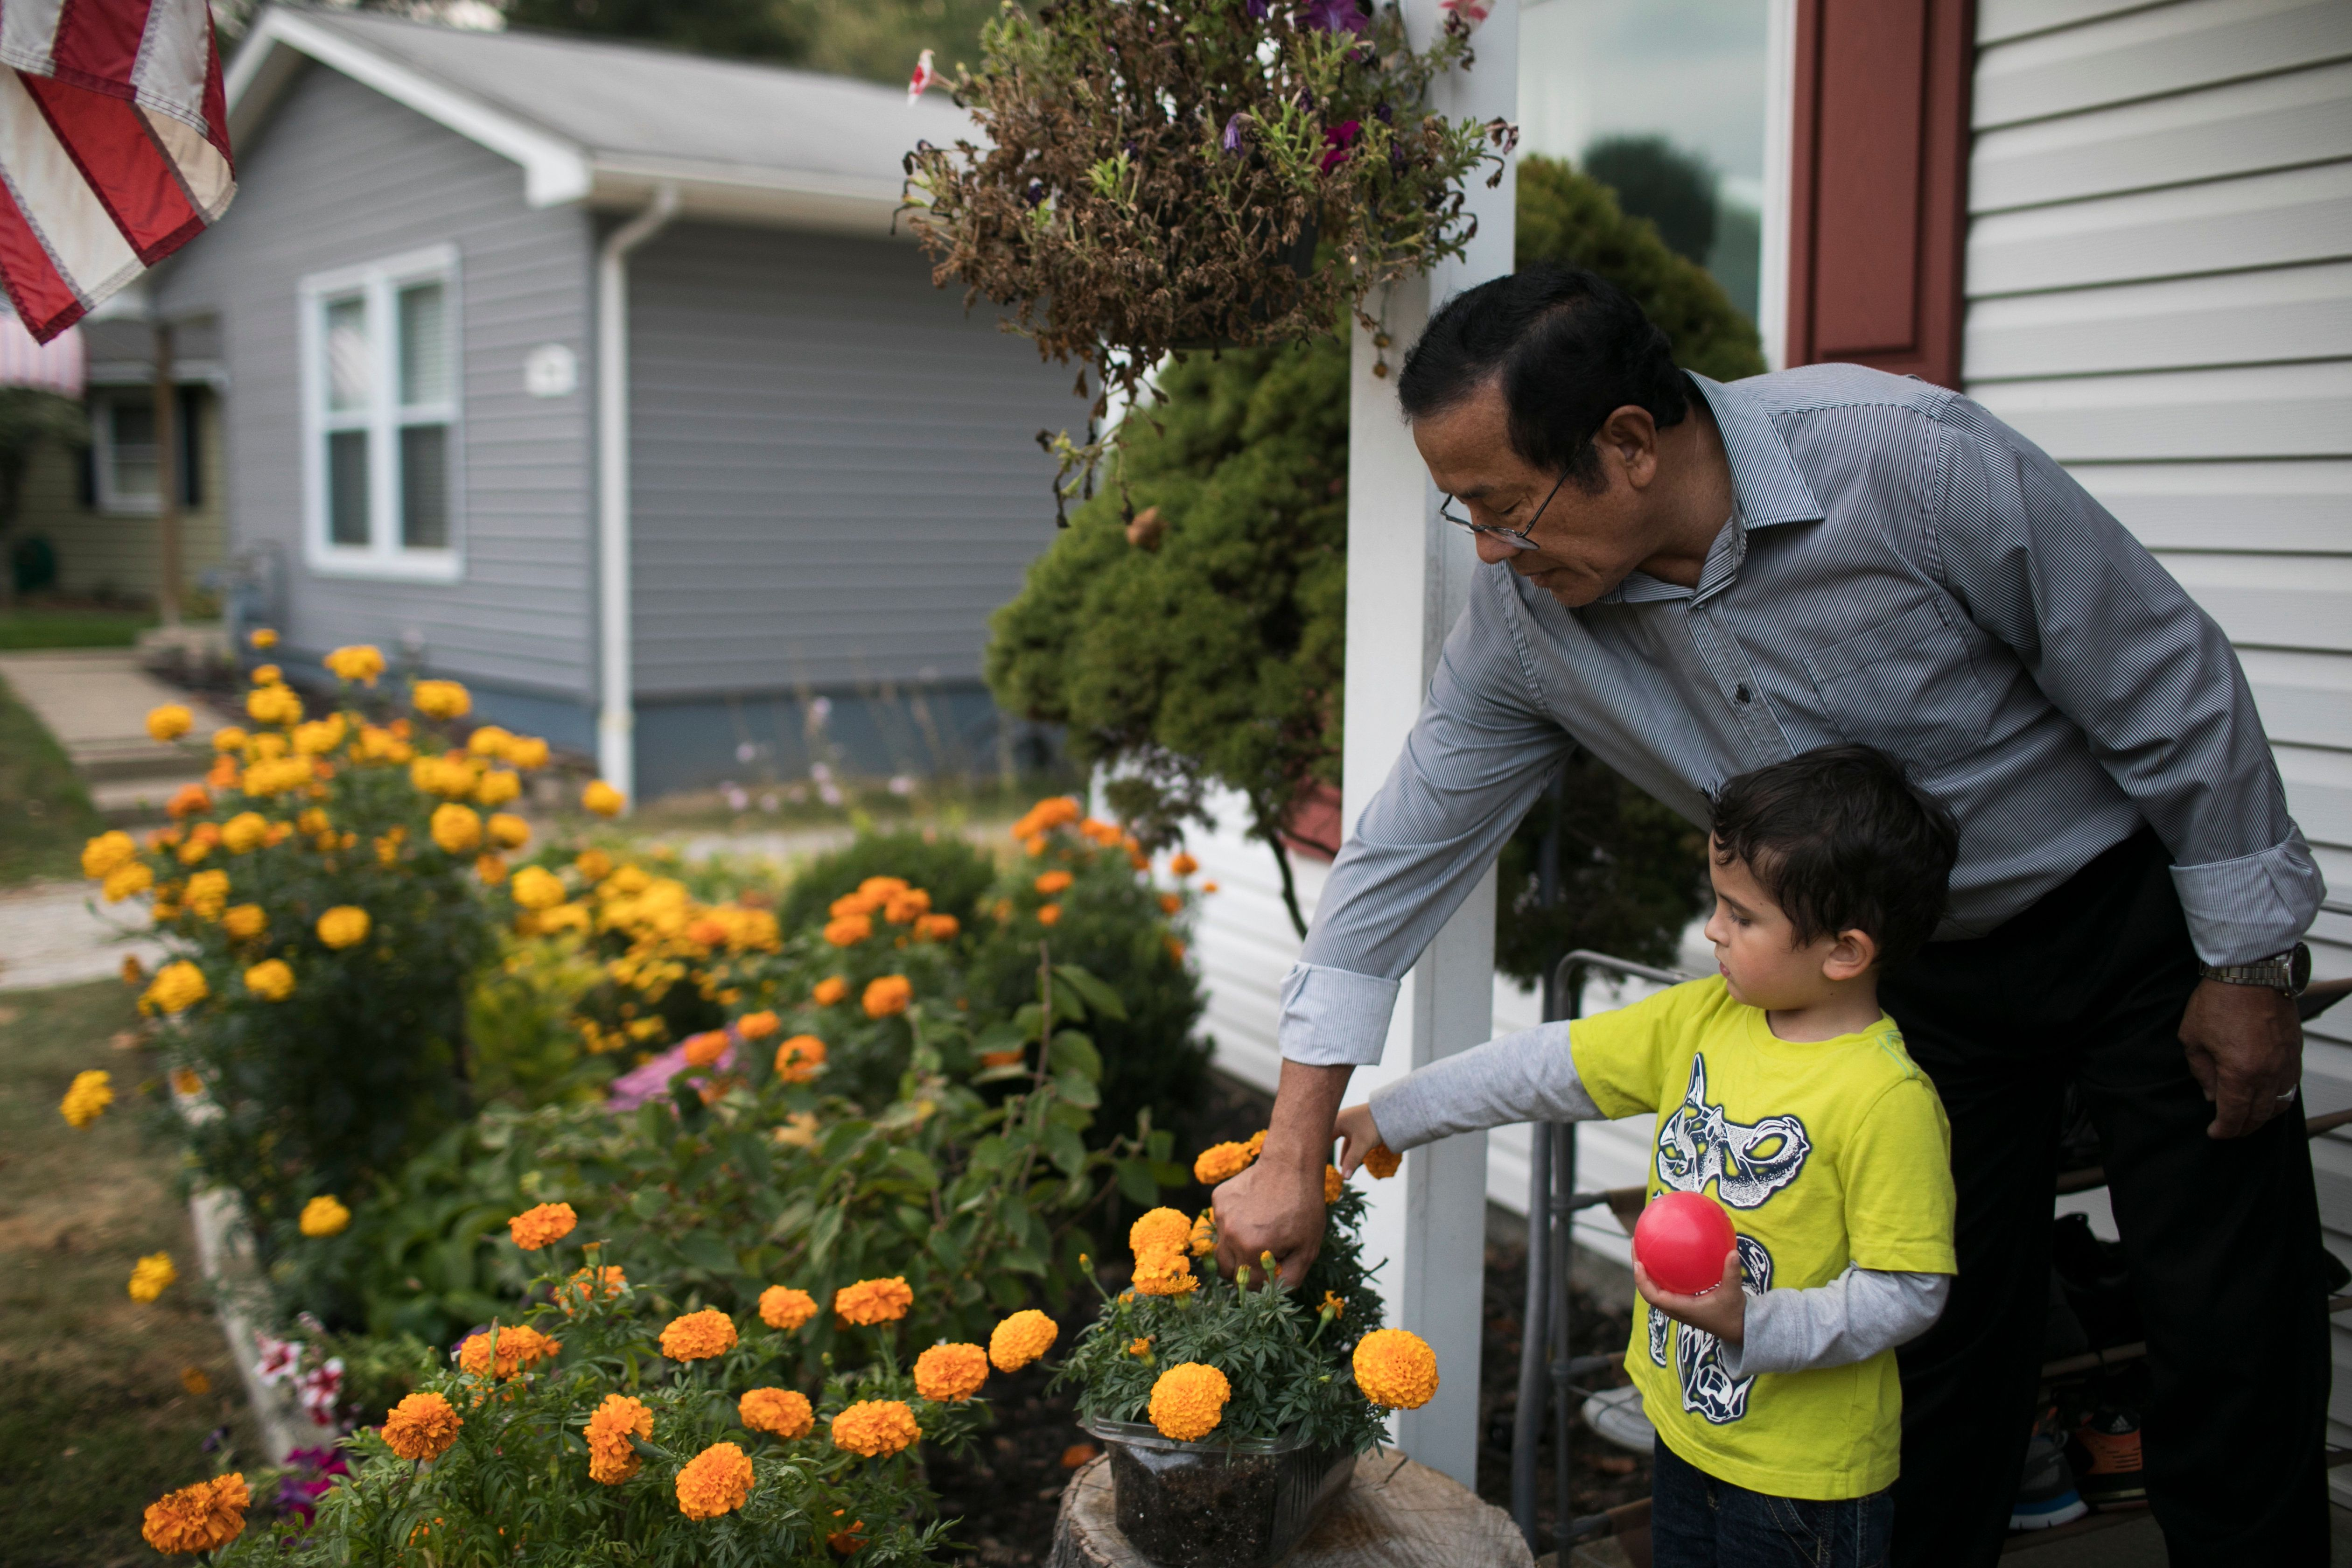 Dhan Tumbapoo and his grandson Silas water their marigolds at home at in Cuyahoga Falls, OH on September 27, 2017.